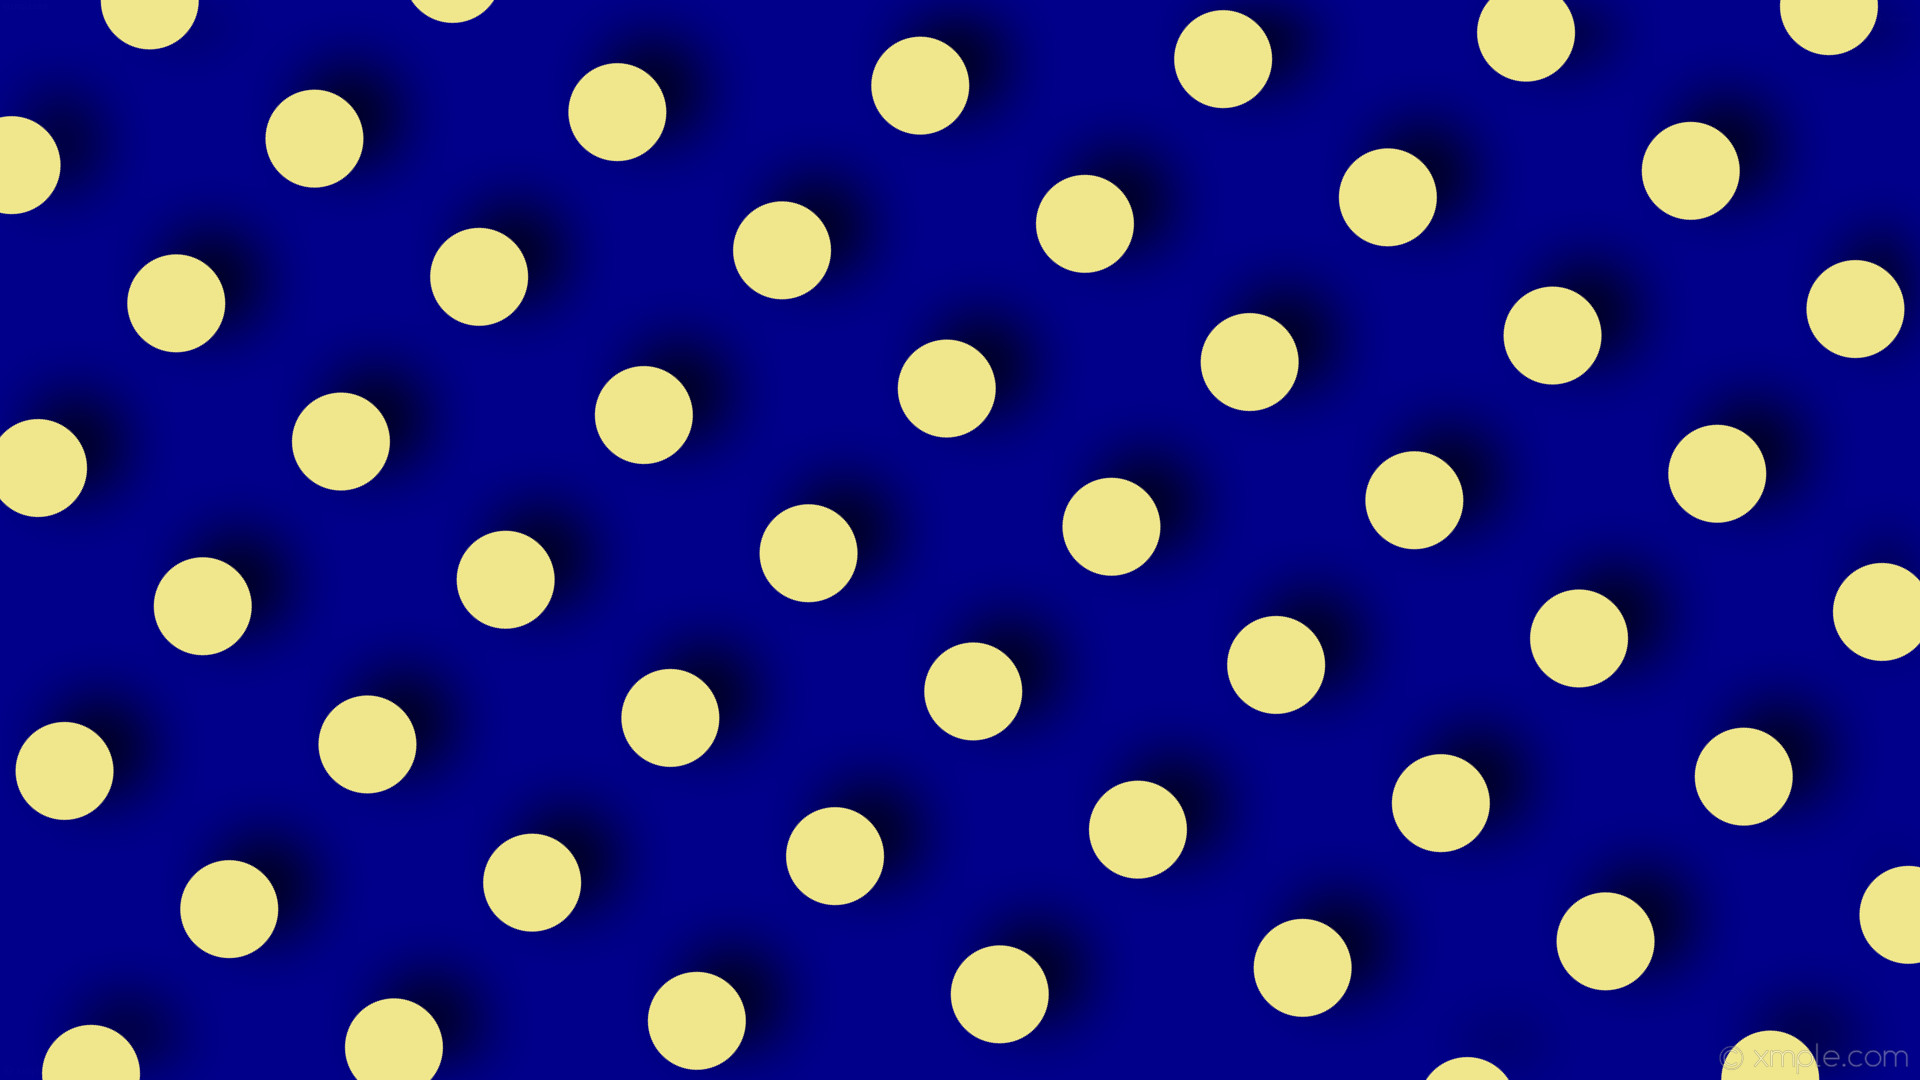 wallpaper dots drop shadow blue yellow polka dark blue khaki #00008b  #f0e68c 50°